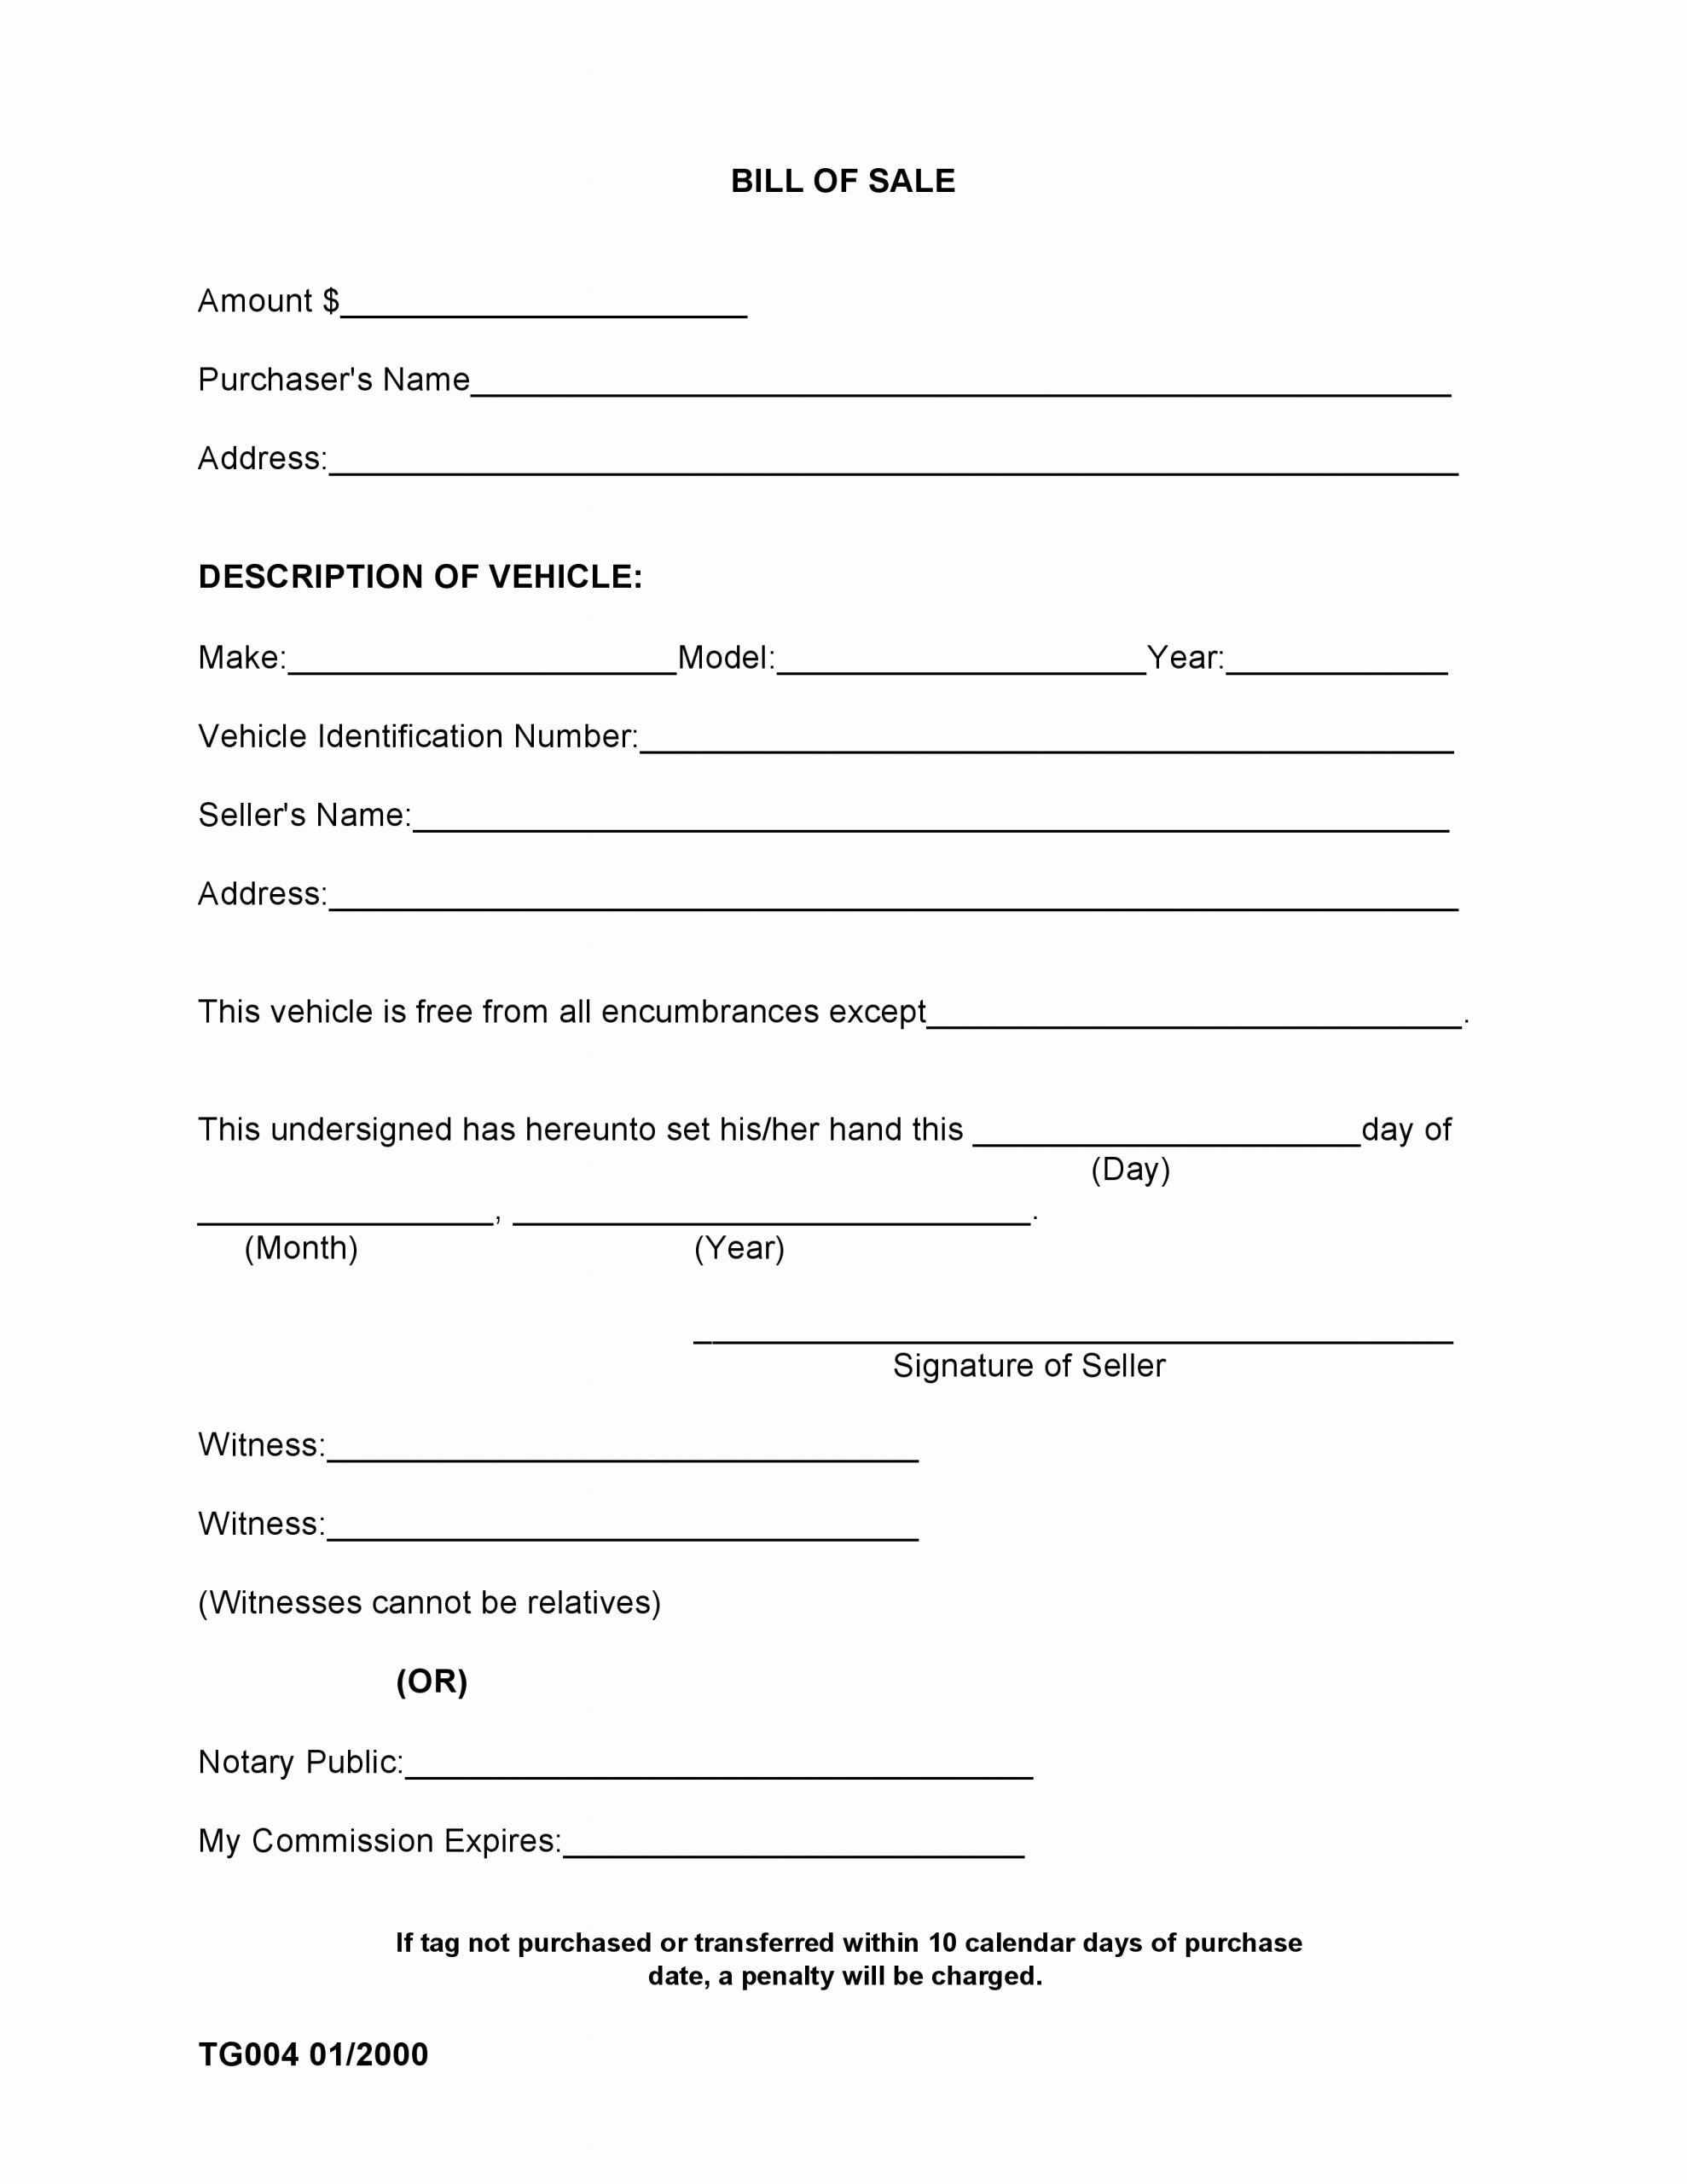 Alabama Bill Of Sale for Boat Best Of Free Madison County Alabama Bill Of Sale form Pdf